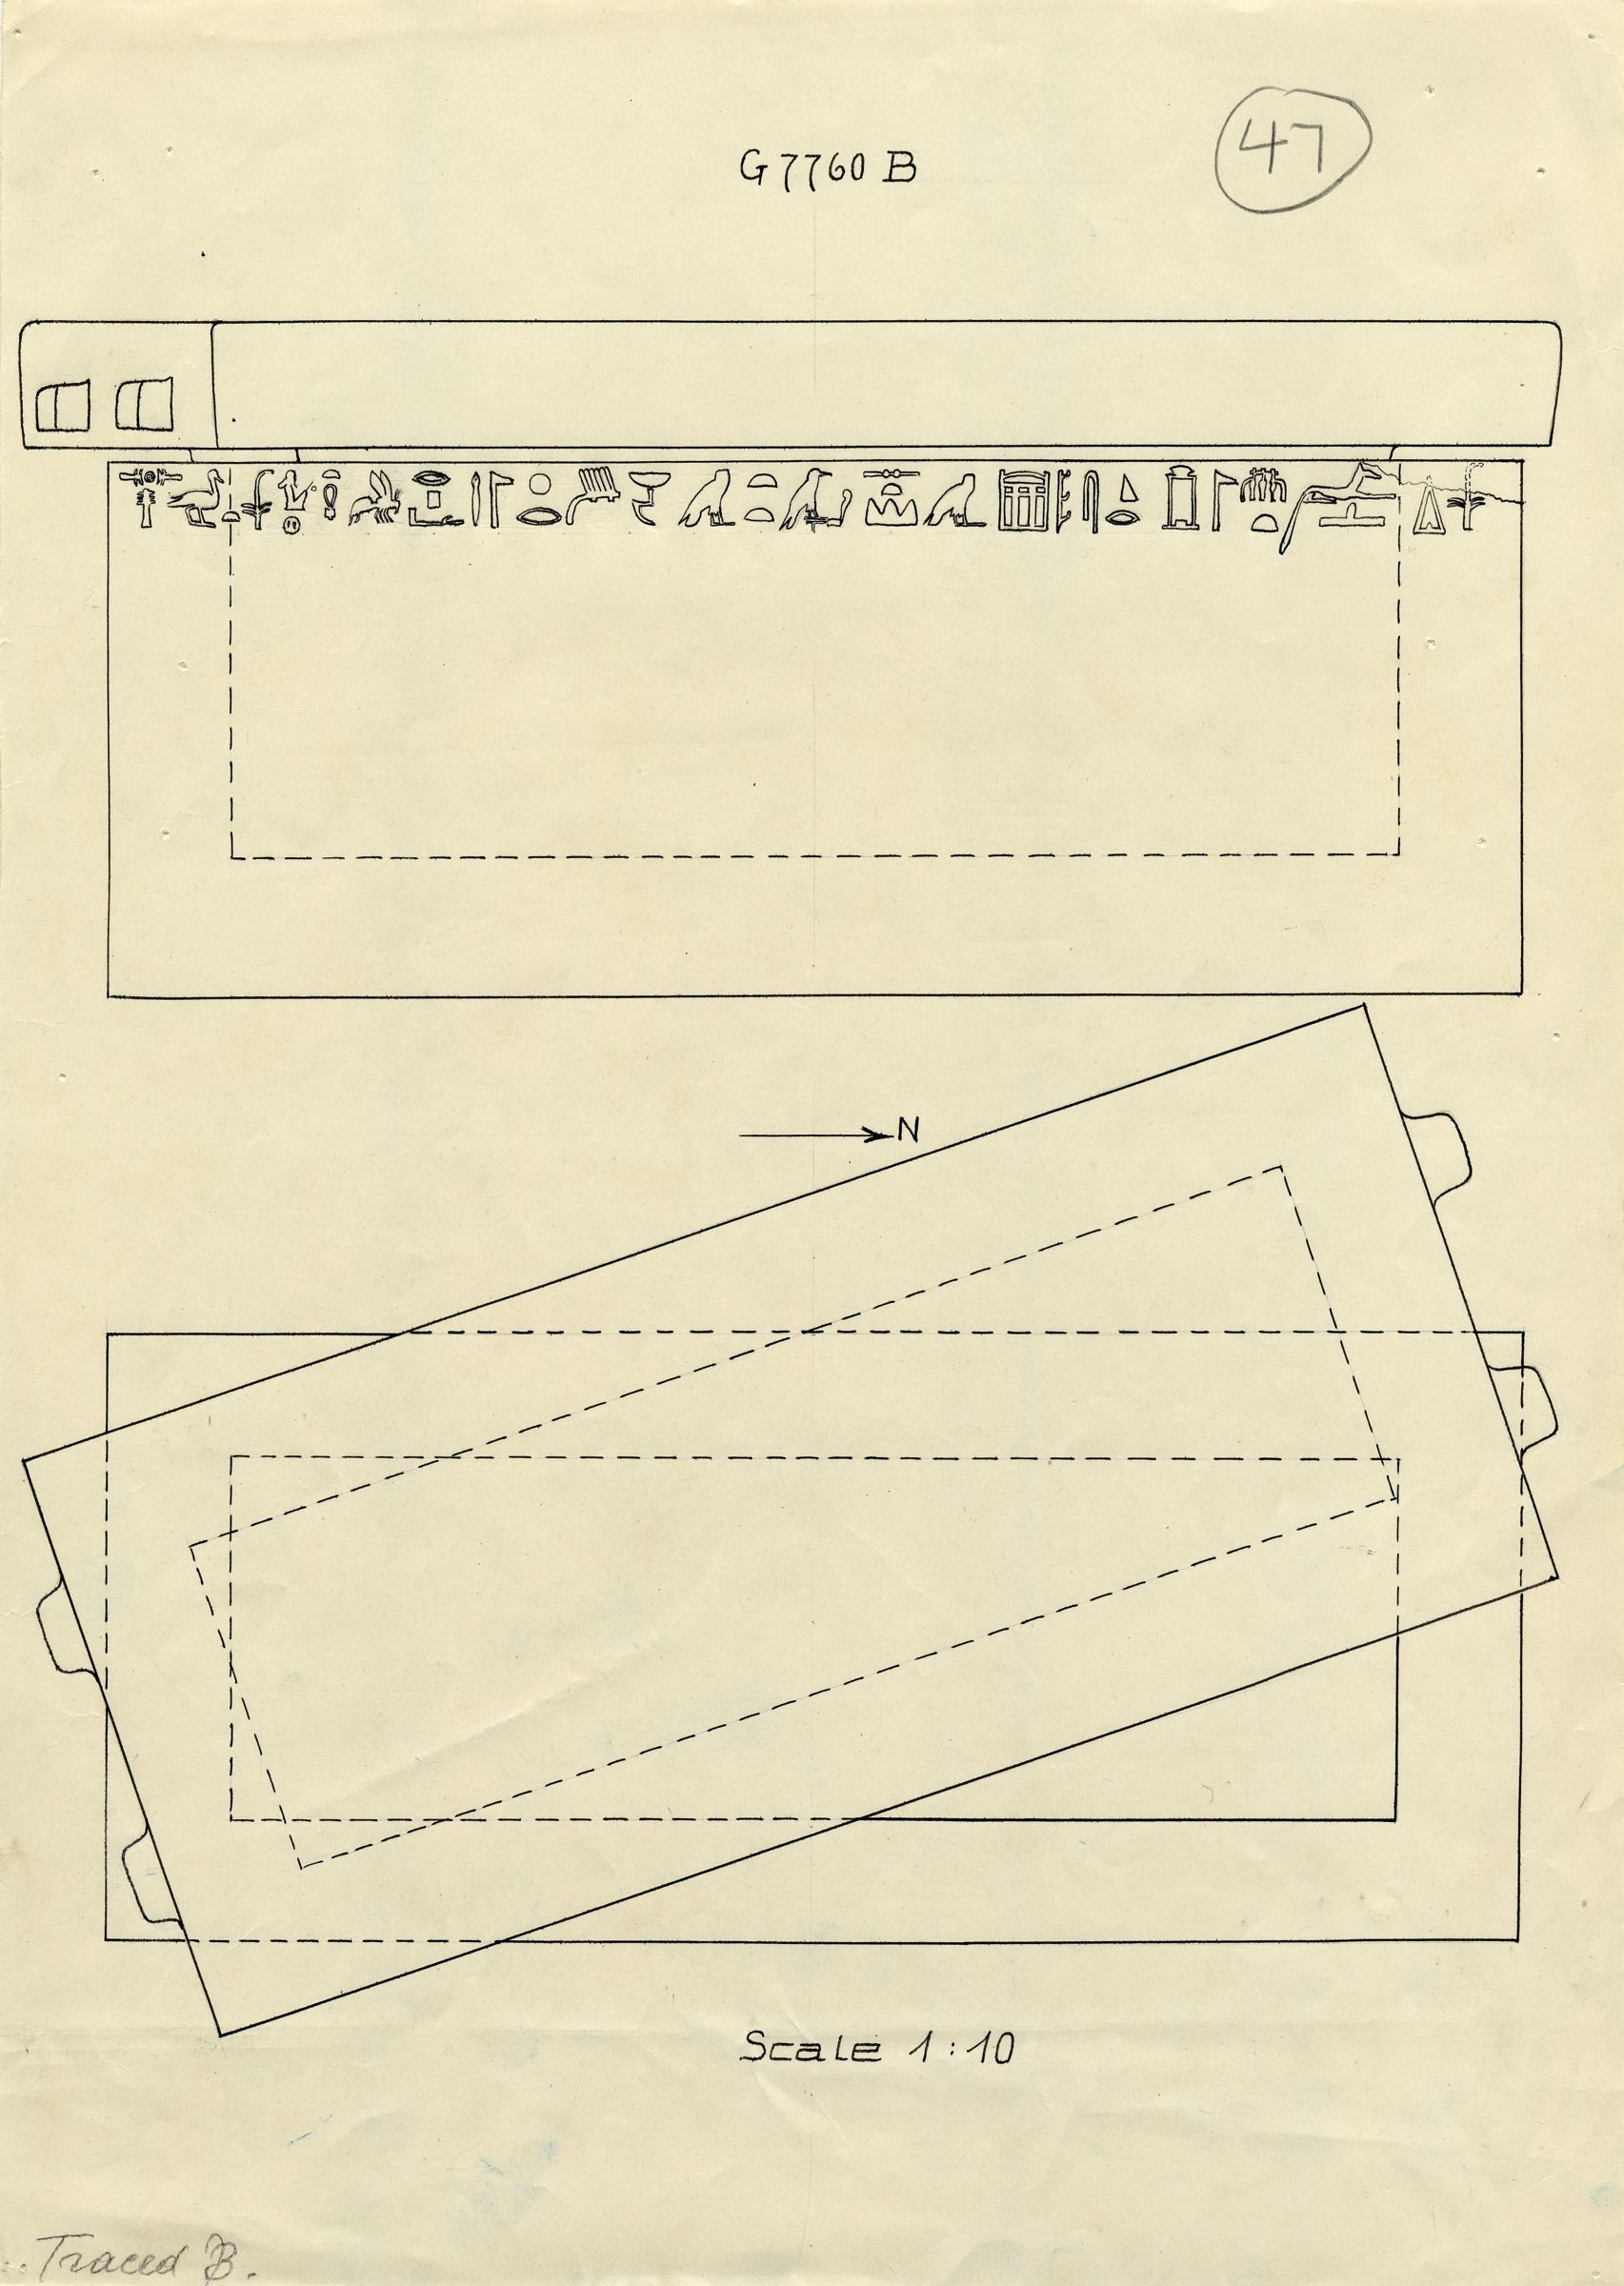 Drawings: G 7760, Shaft B, sarcophagus inscribed for Mindjedef